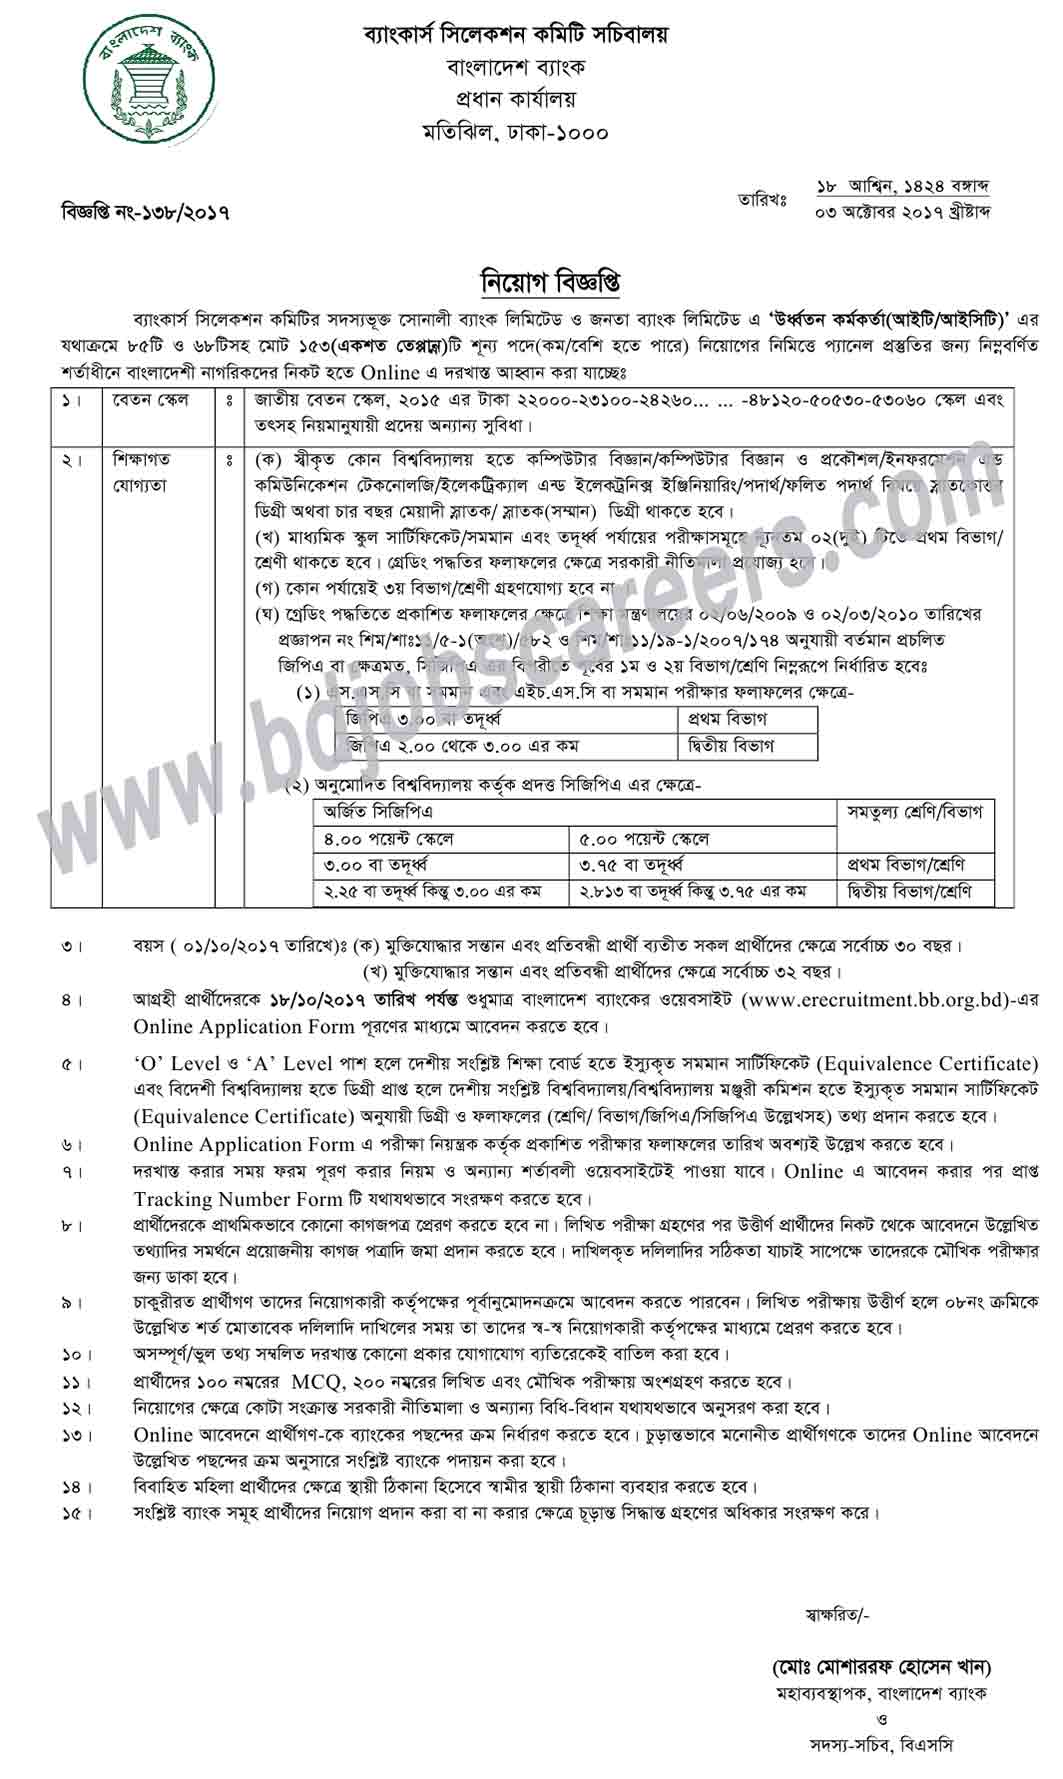 Sonali-Bank-Job-Circular-2017